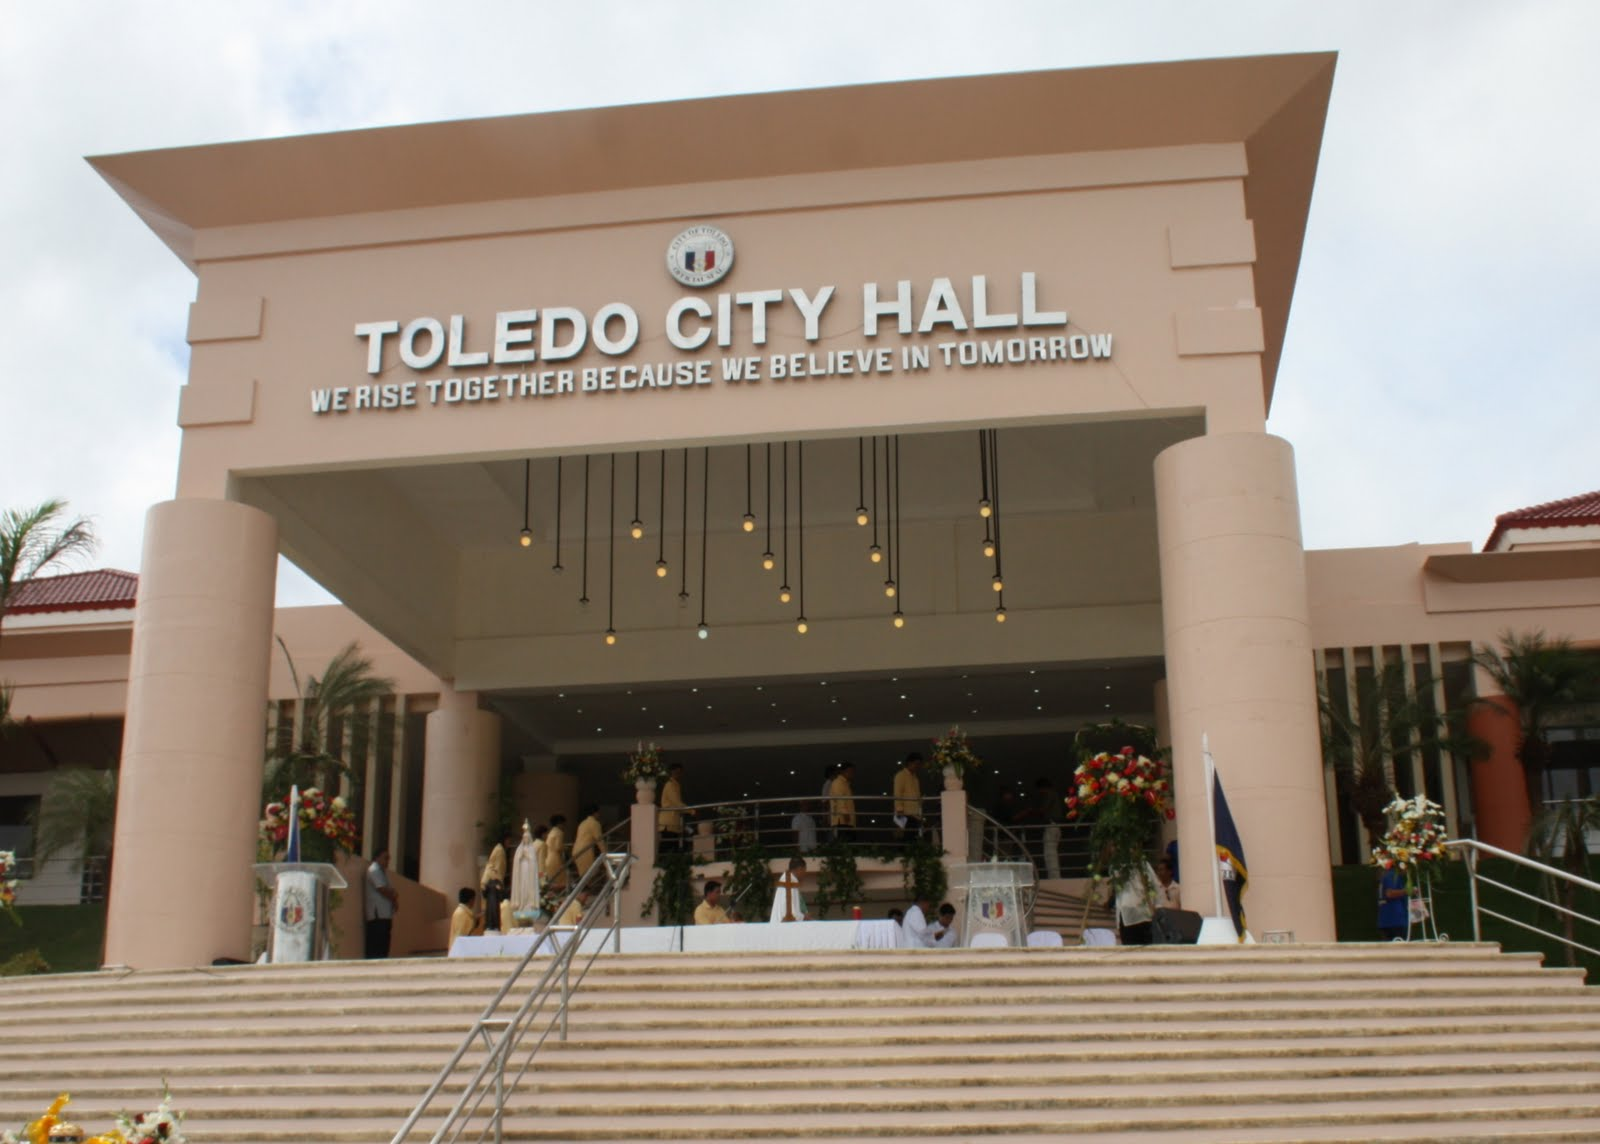 lucille b. tomarong: Inauguration of Toledo Garden City Hall